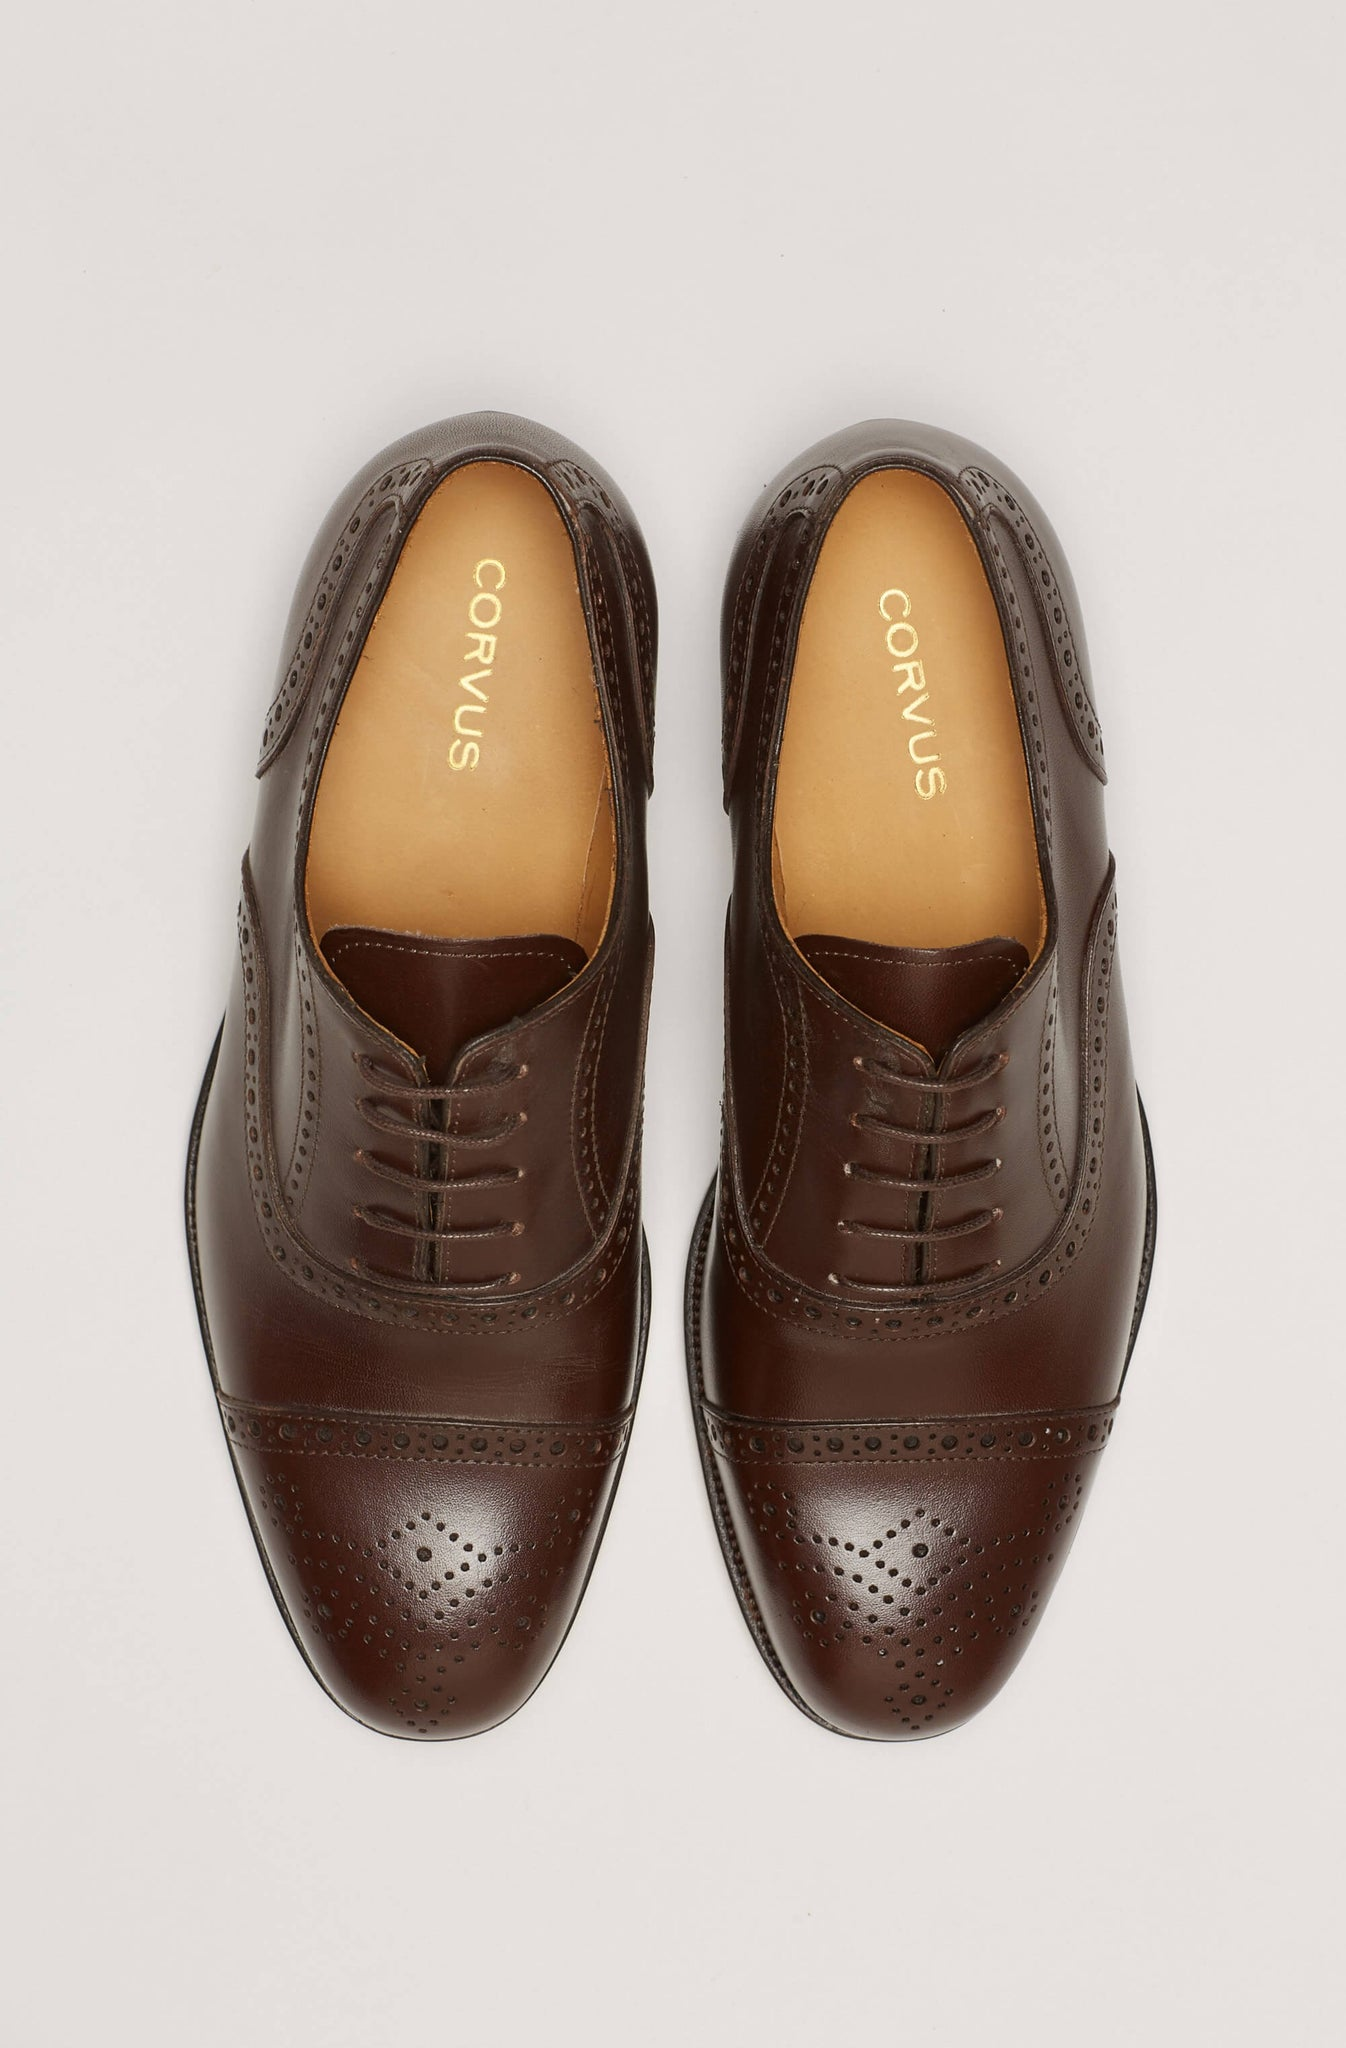 Zapato Semi-Brogue Marrón Oscuro